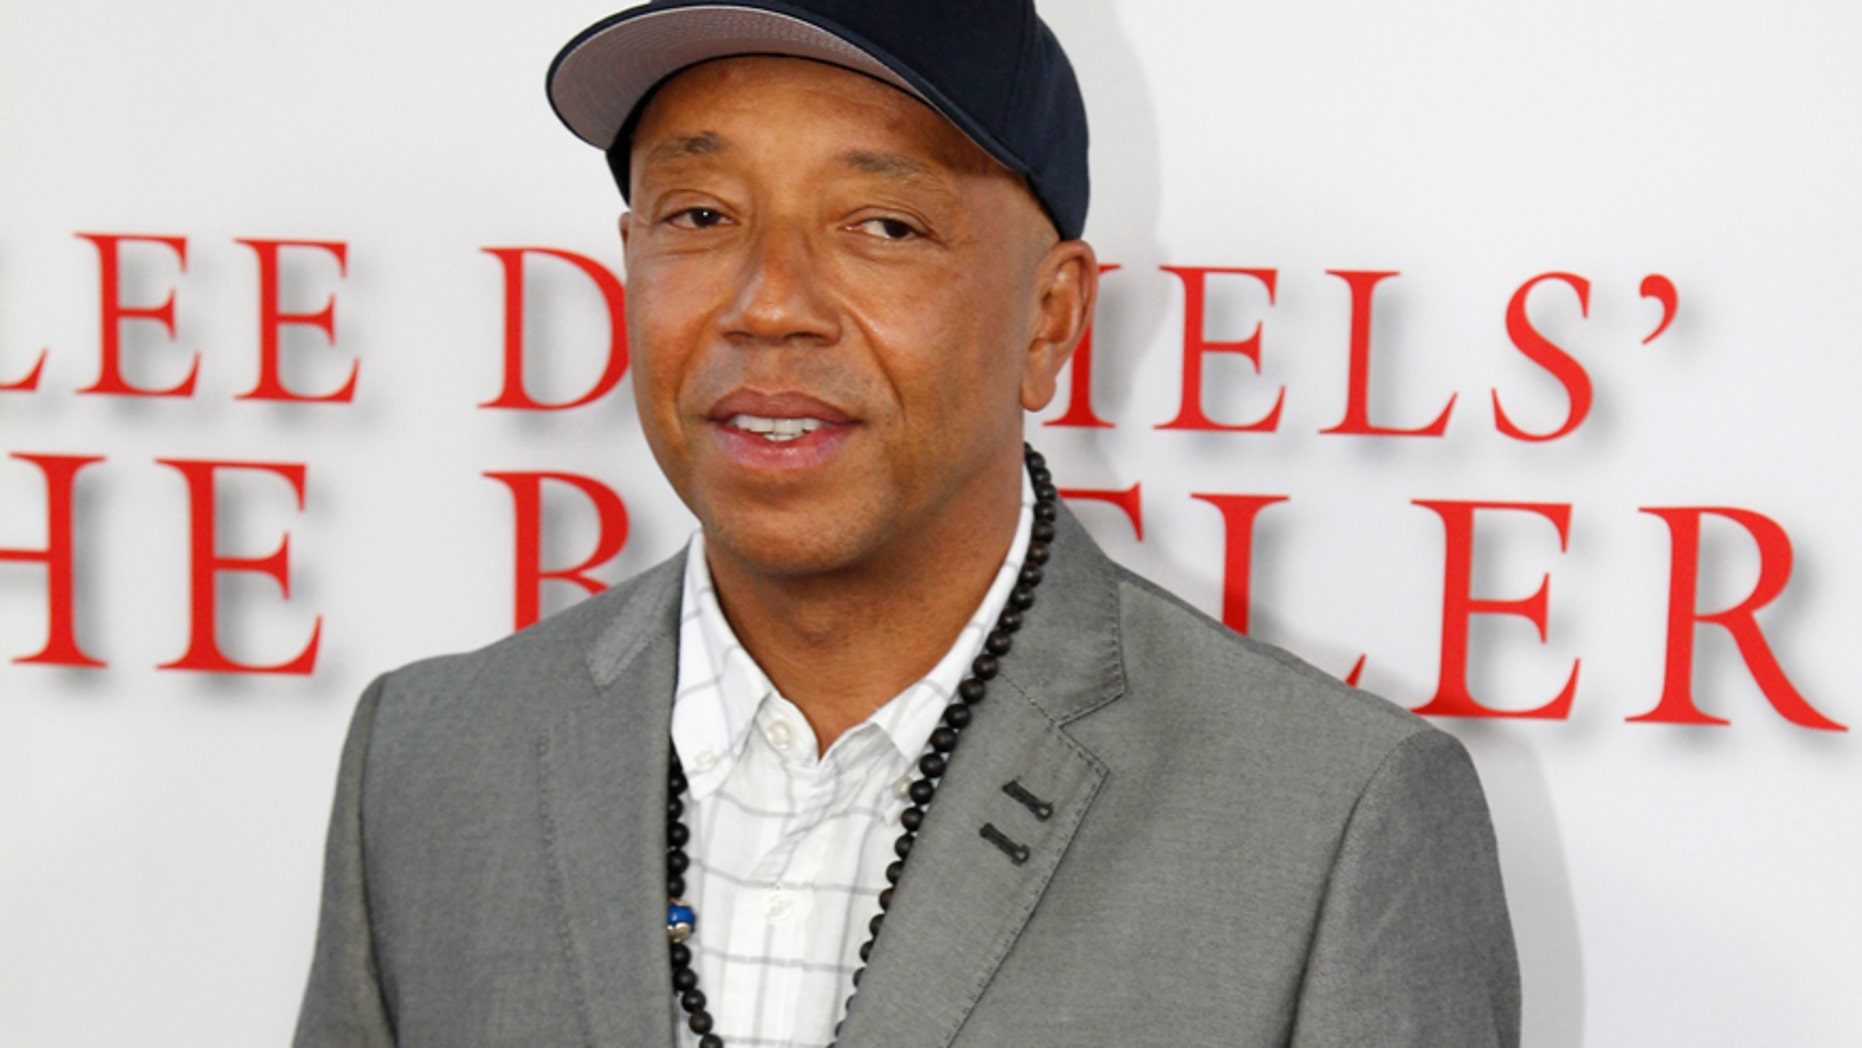 """Russell Simmons arrives as a guest to the premiere of the new film """"Lee Daniels' The Butler"""" in Los Angeles, California August 12, 2013."""